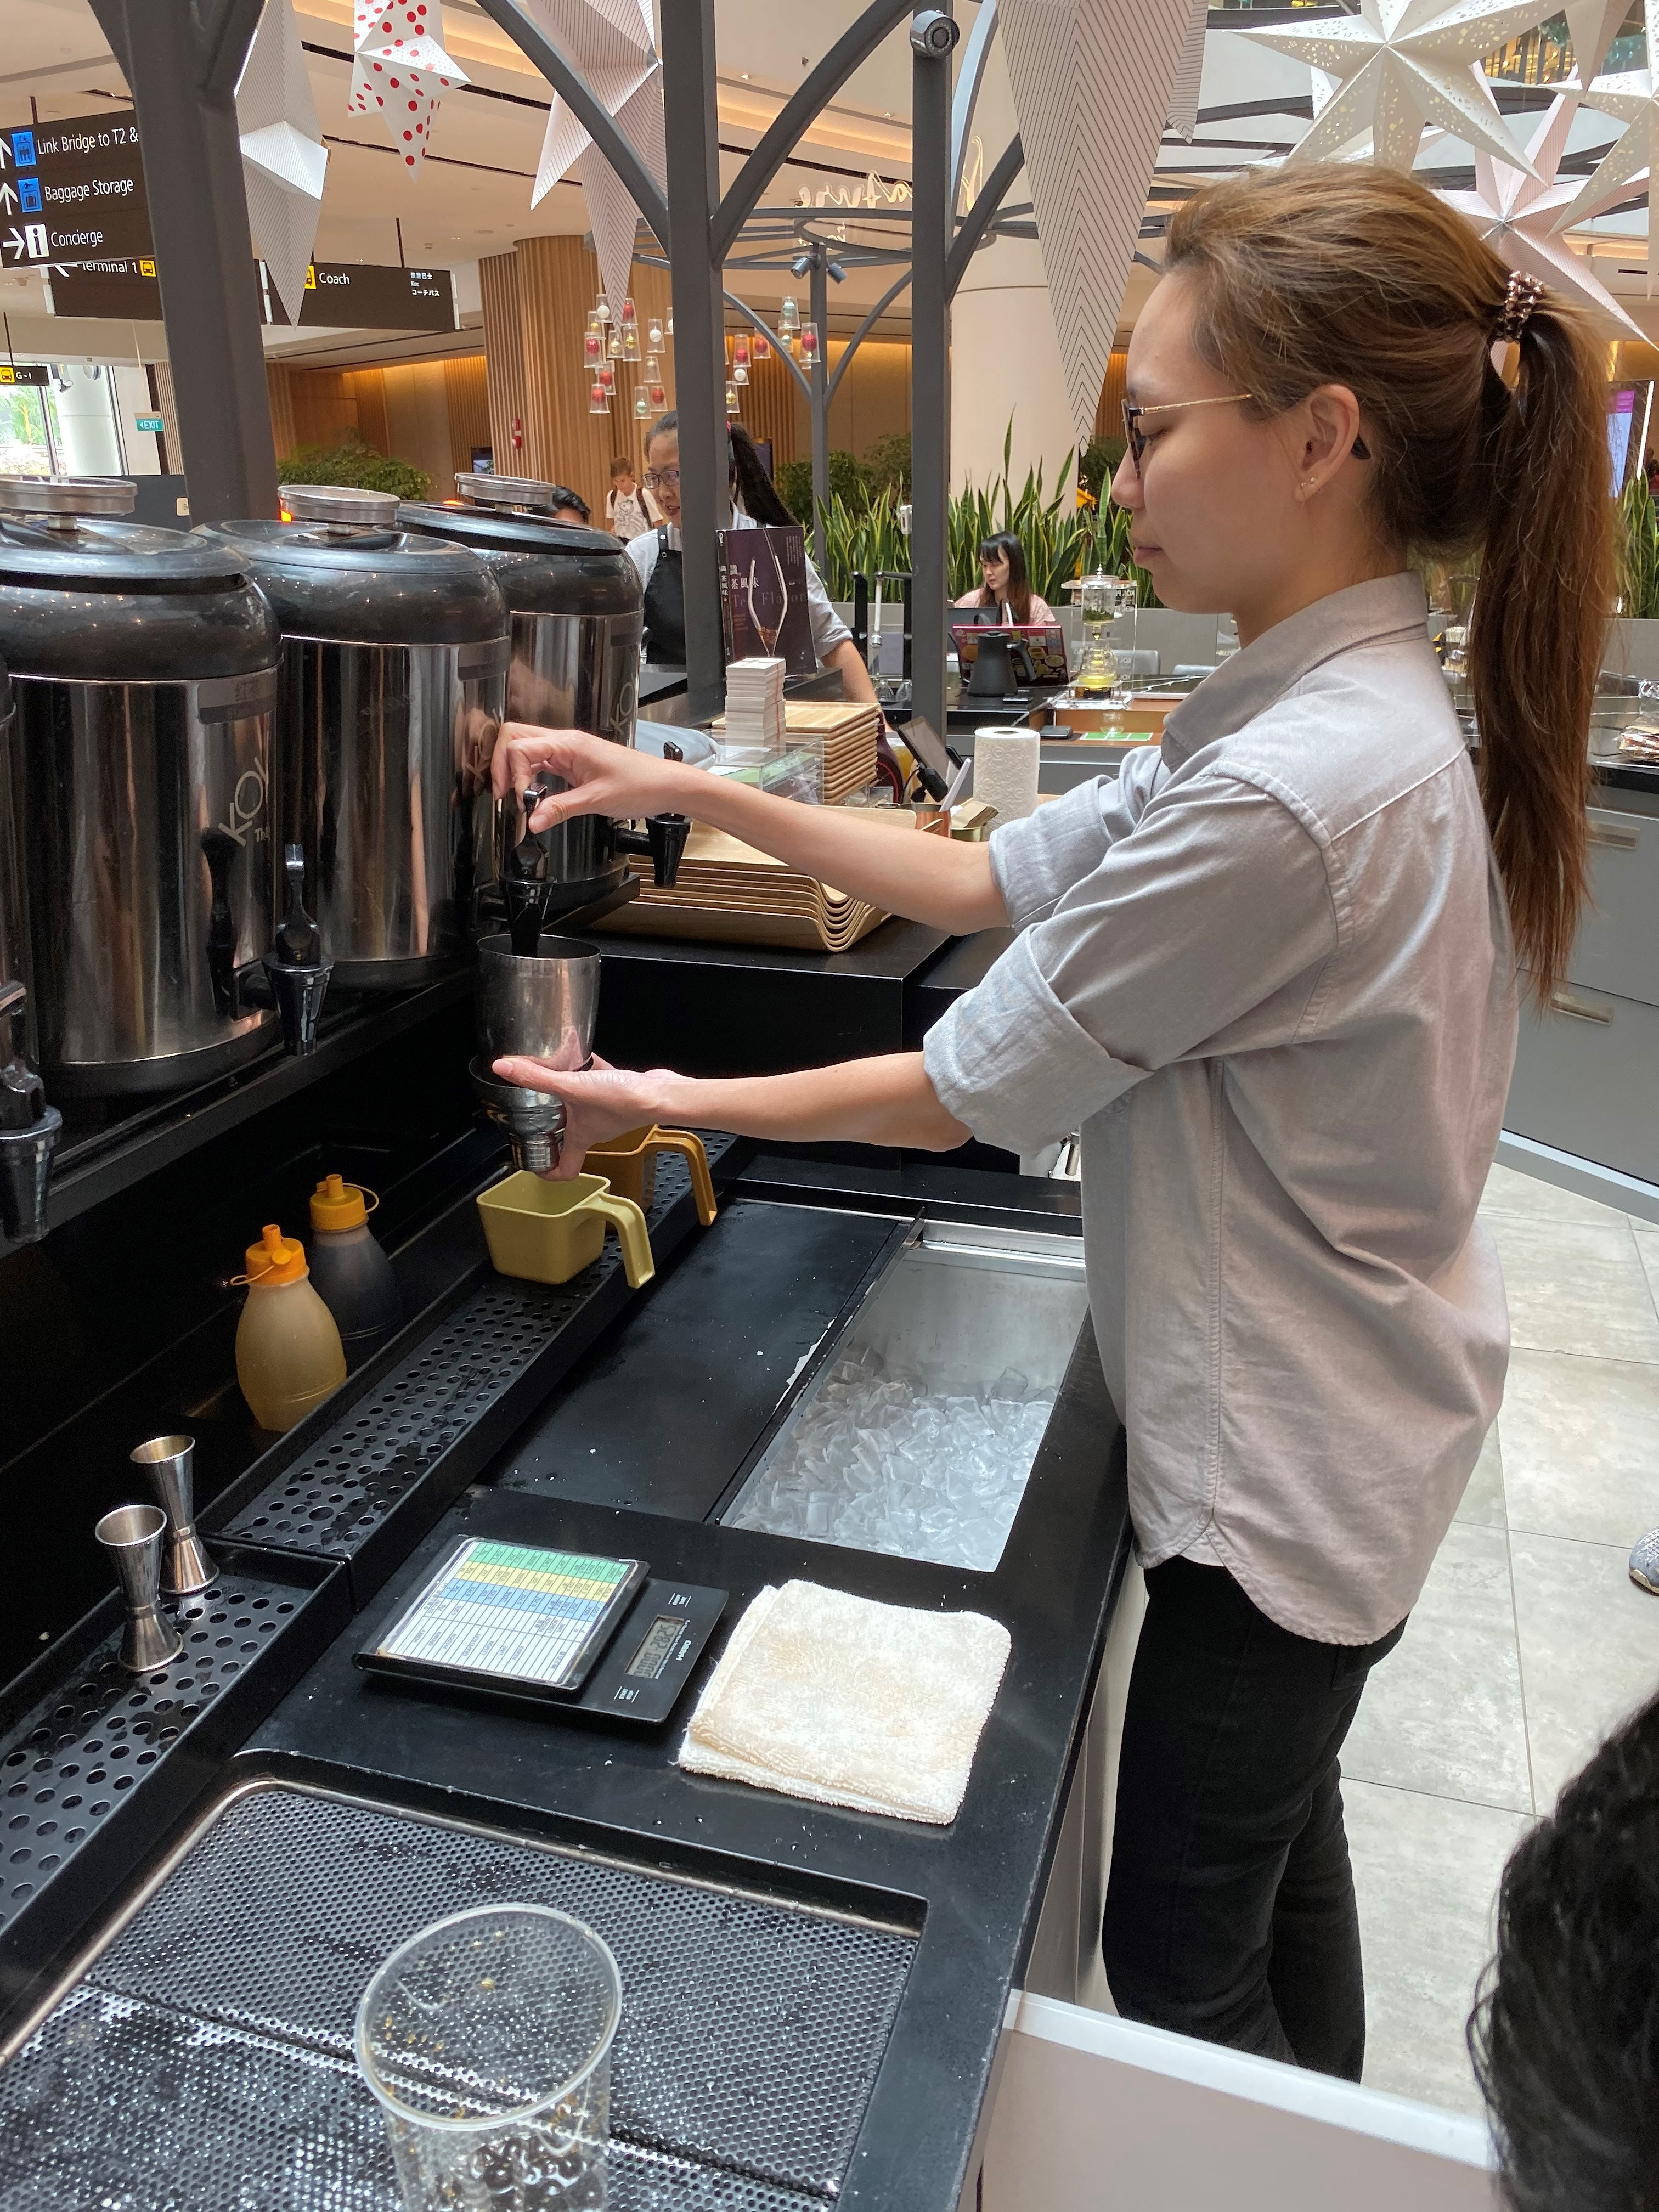 Ms Mindy Yeo went through three months of on-the-job training which included workshops on tea-brewing and customer service